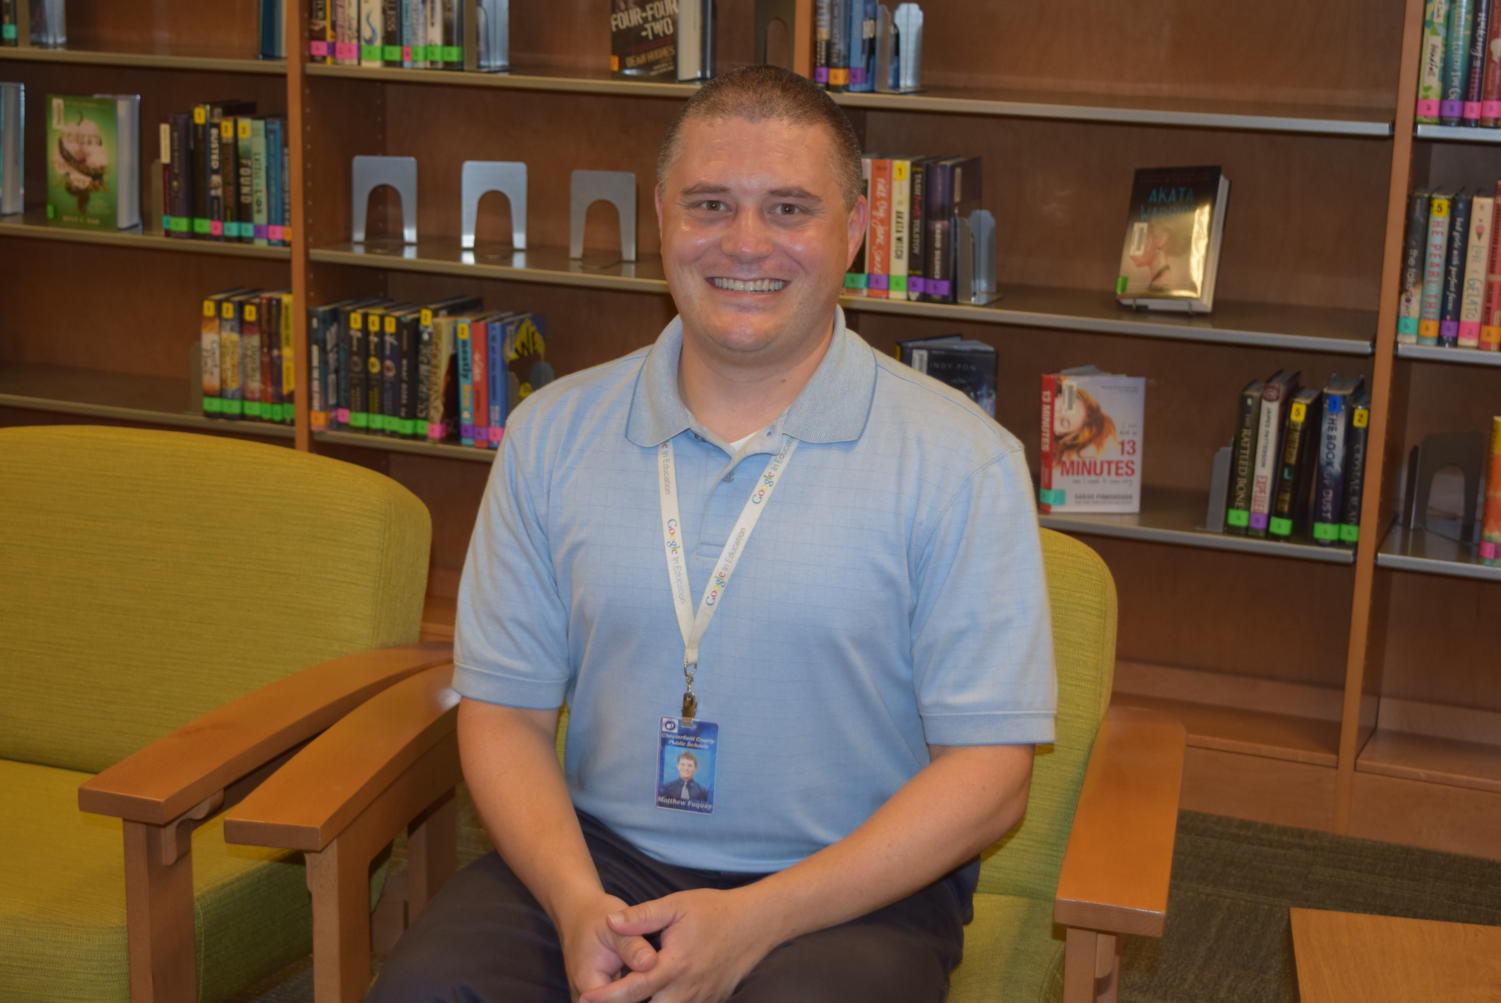 CCPS Technology Integrator Mr. Matt Fuquay earns Midlo's June Employee of the Month recognition.